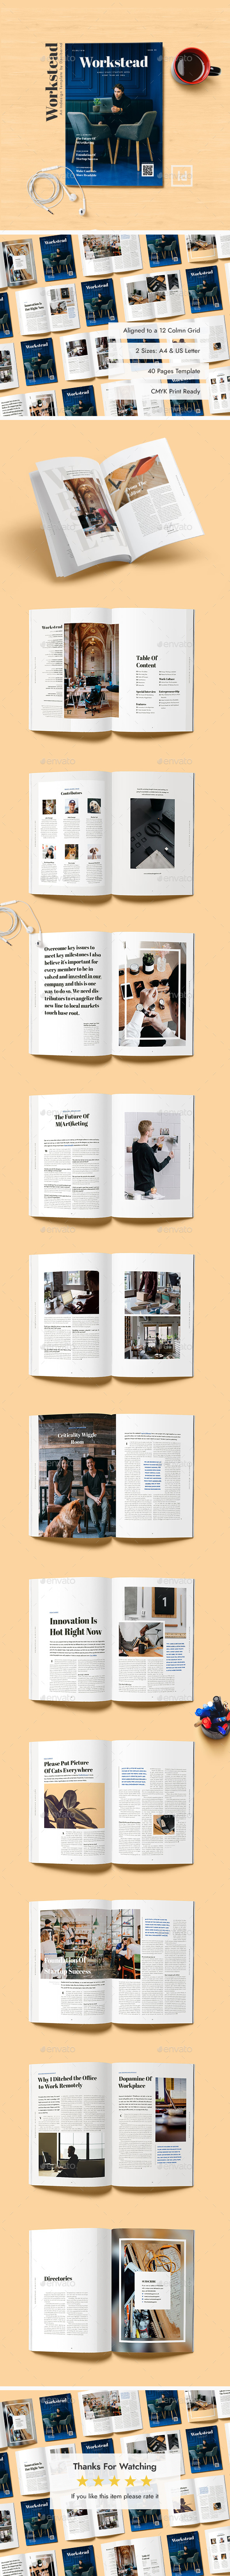 Workstead Magazine - 40 Pages Indesign Template - Magazines Print Templates